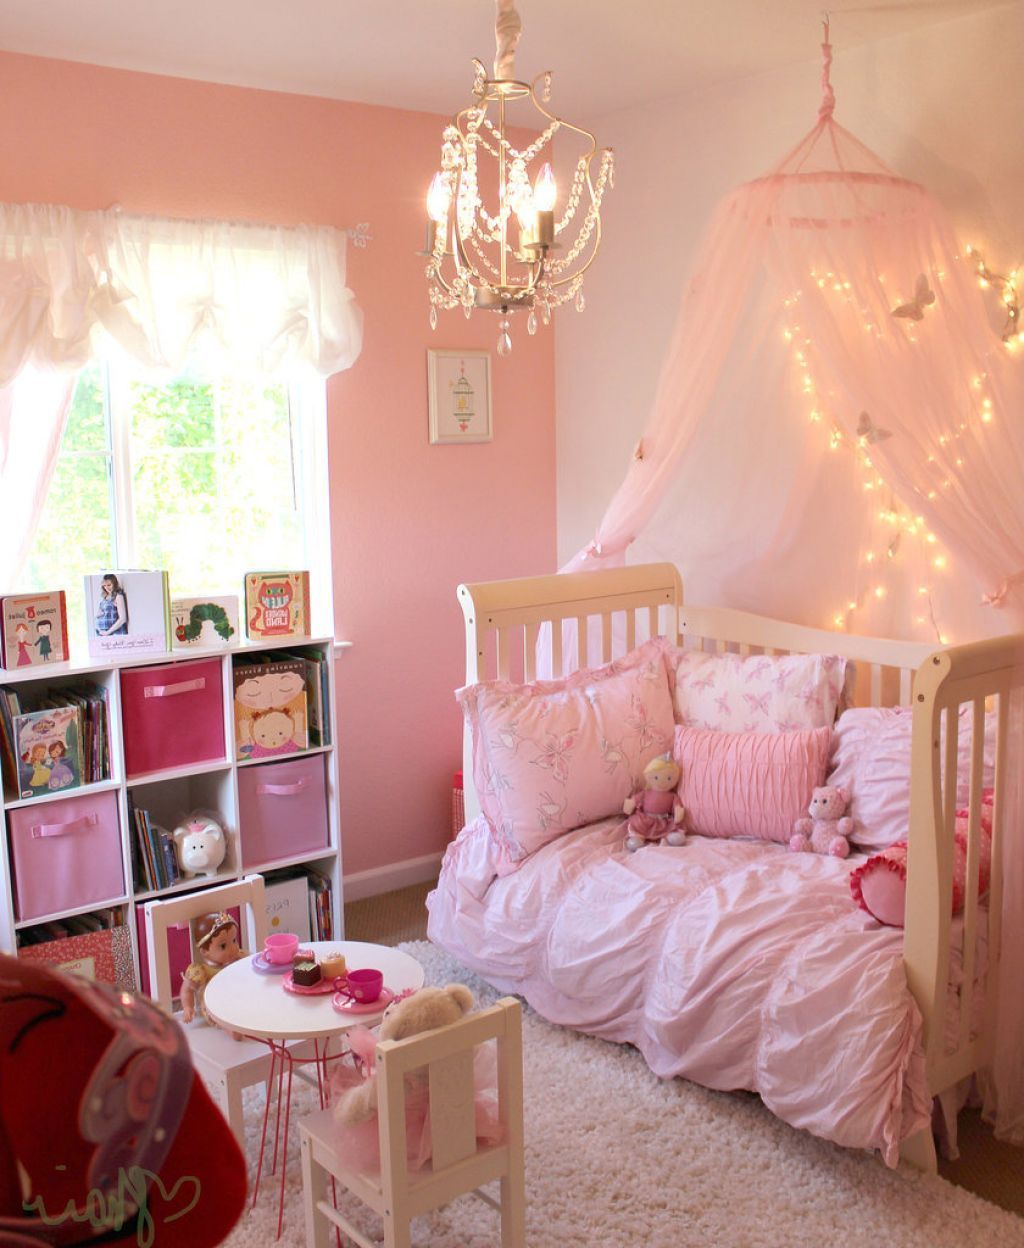 Diy Bedroom Ideas For Decorating The Kid S Bedroom To Be: 32 Cheery Designs For A Little Girl's Dream Bedroom